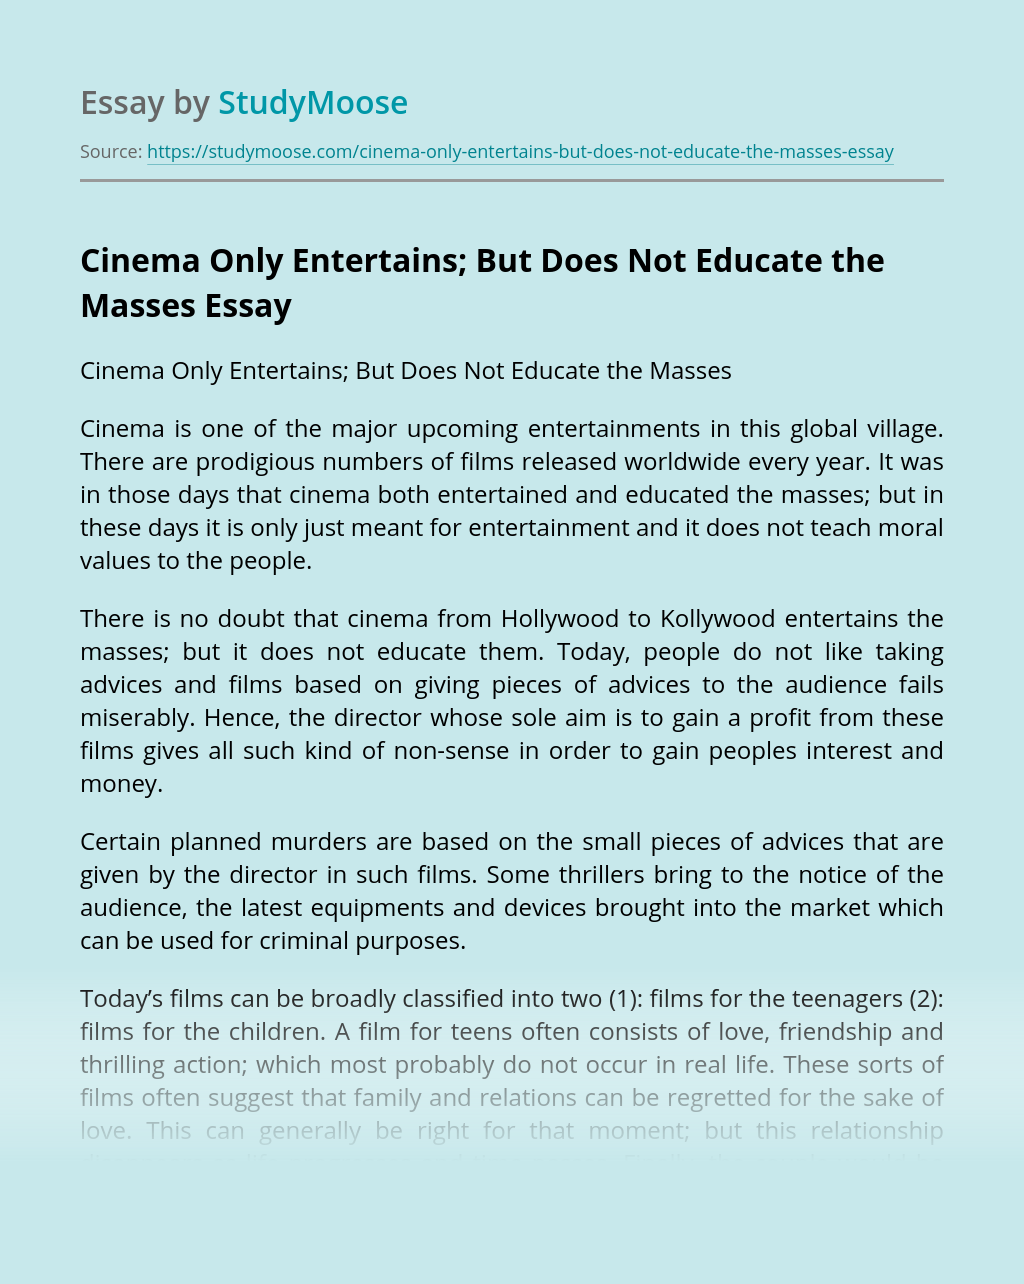 Cinema Only Entertains; But Does Not Educate the Masses